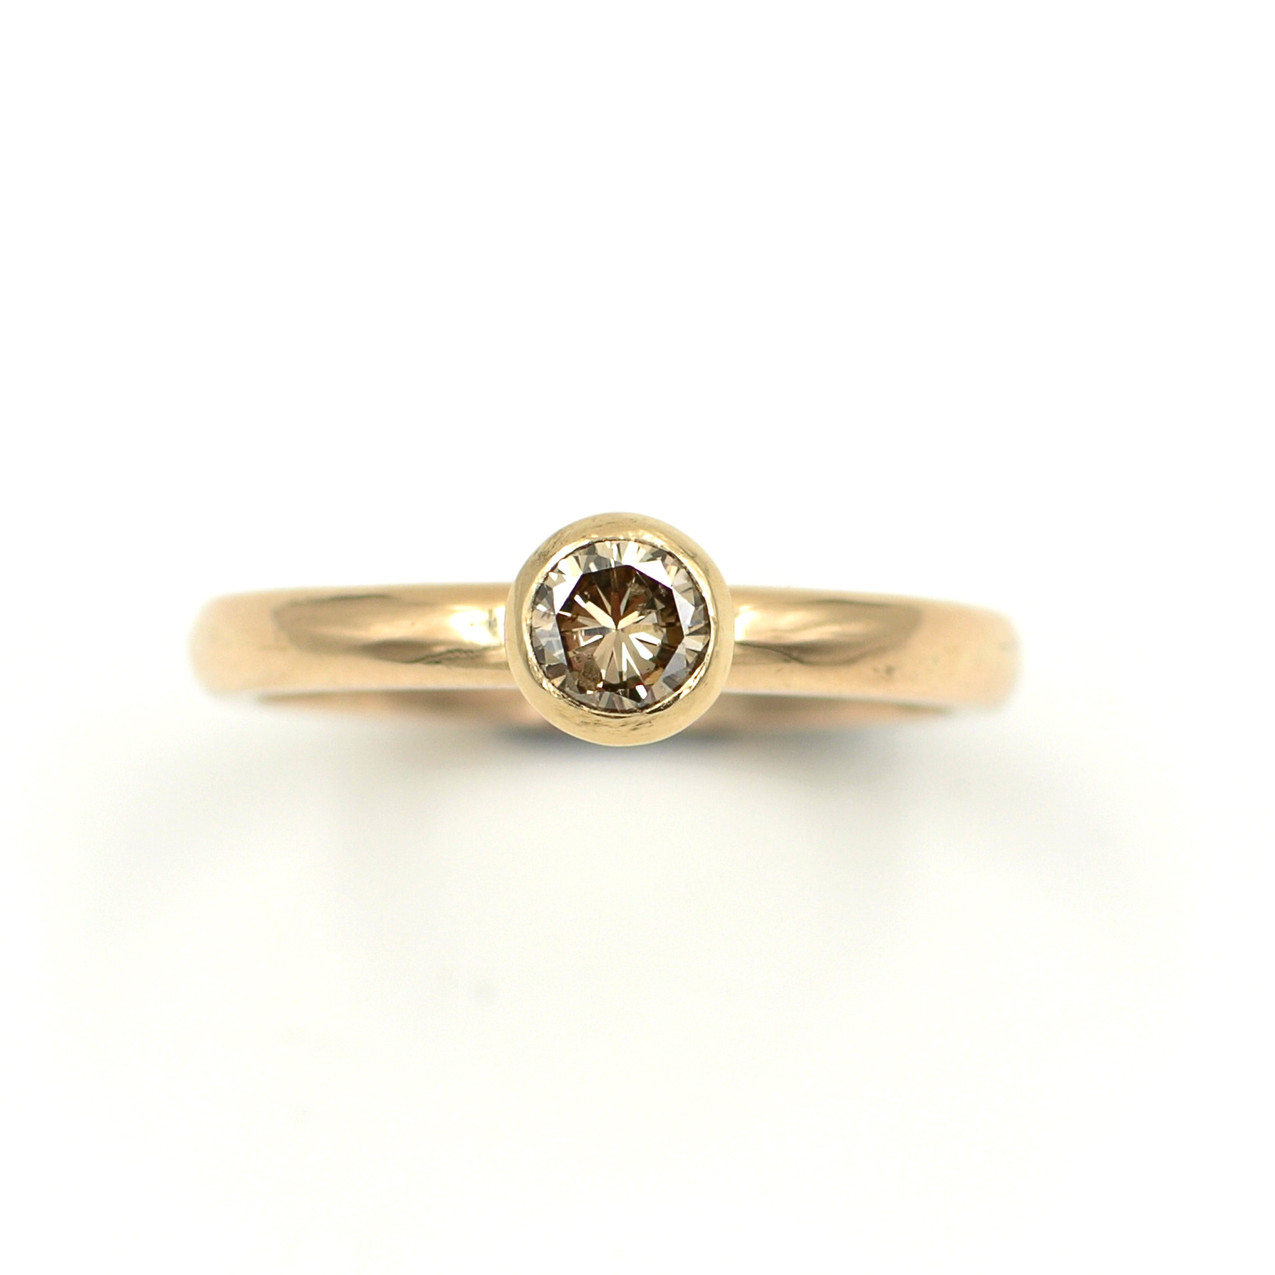 The finished remodelled ring, made from 9ct yellow gold with a 1/3ct light brown diamond in a modern rubover setting